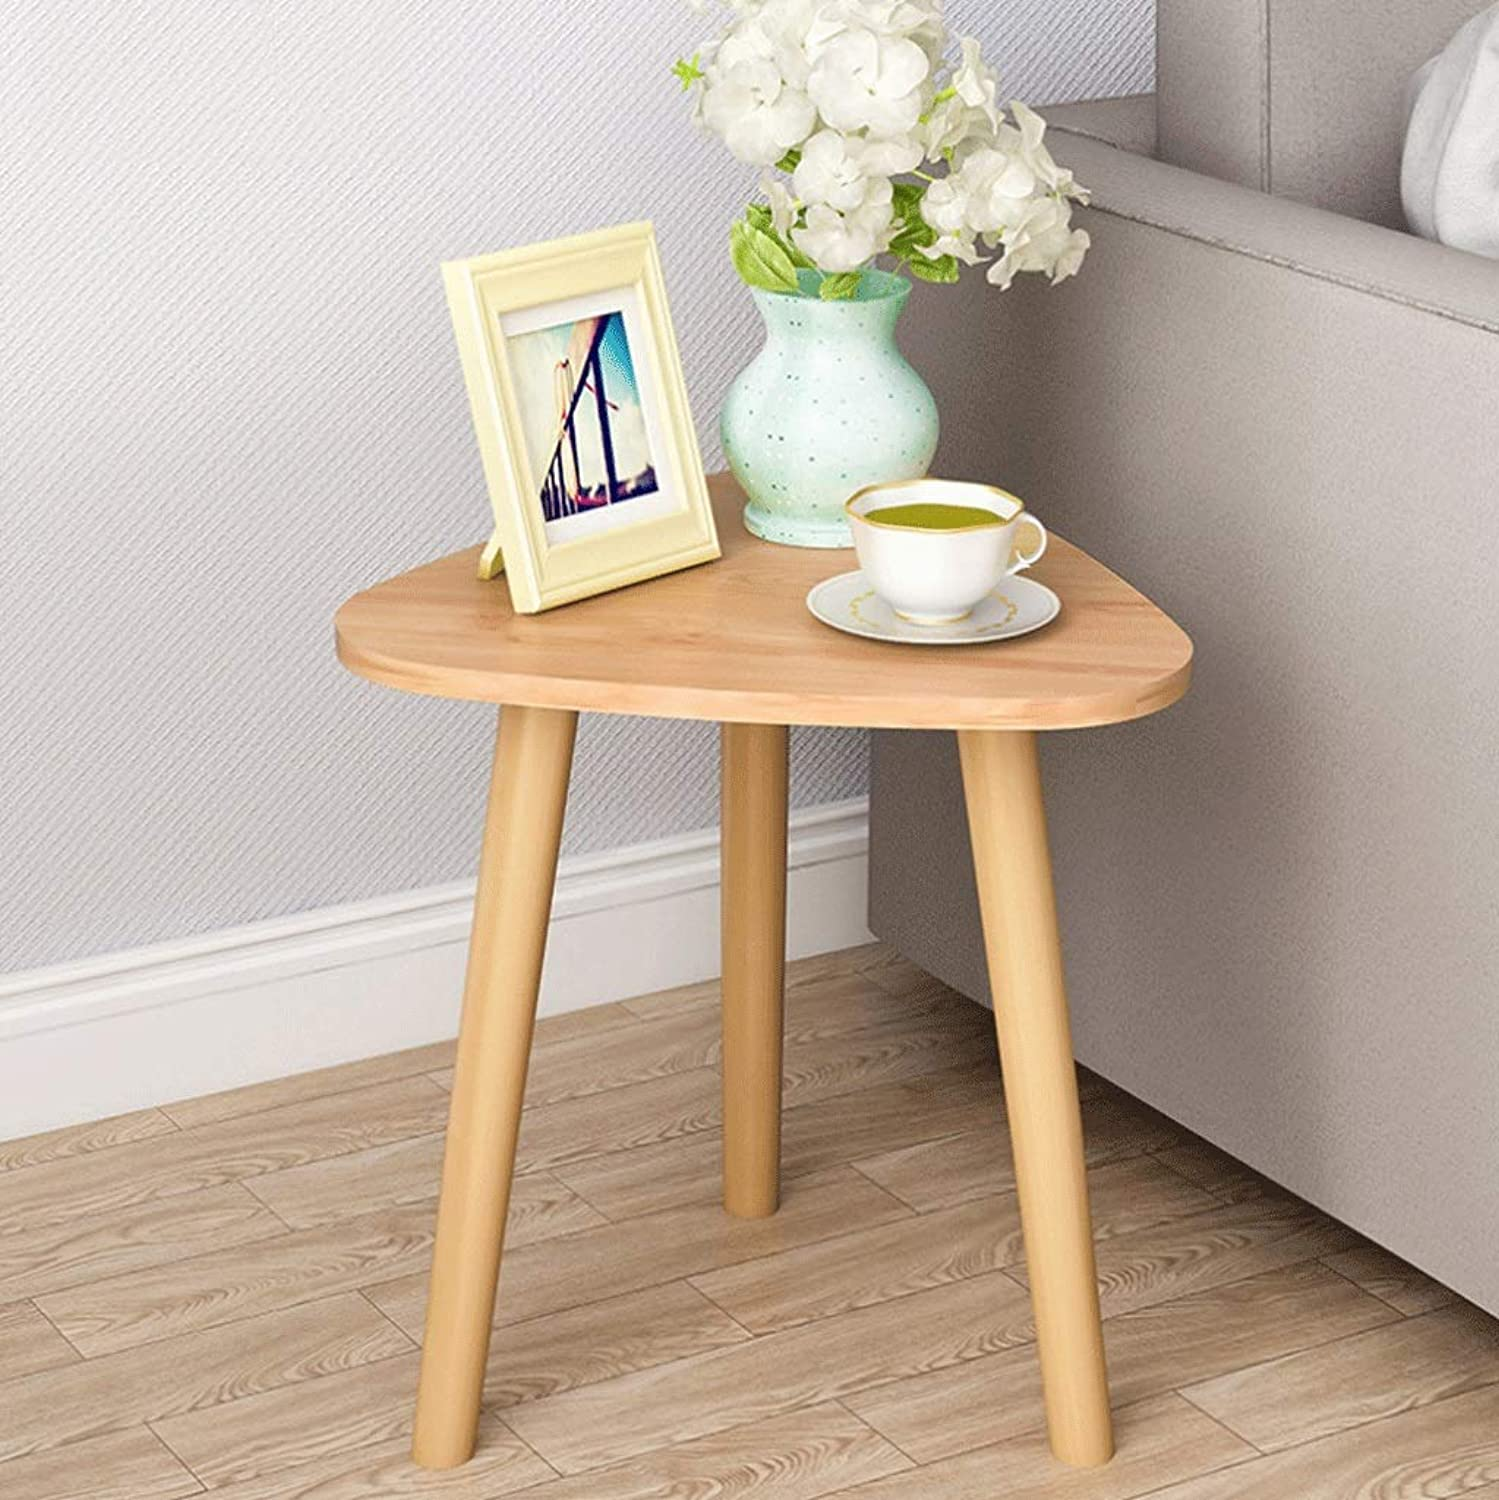 Triangle Coffee Table Side Table Work Table Bedroom Bedside Living Room Sofa Terrace Wood color (color   Natural, Size   35x42 cm)